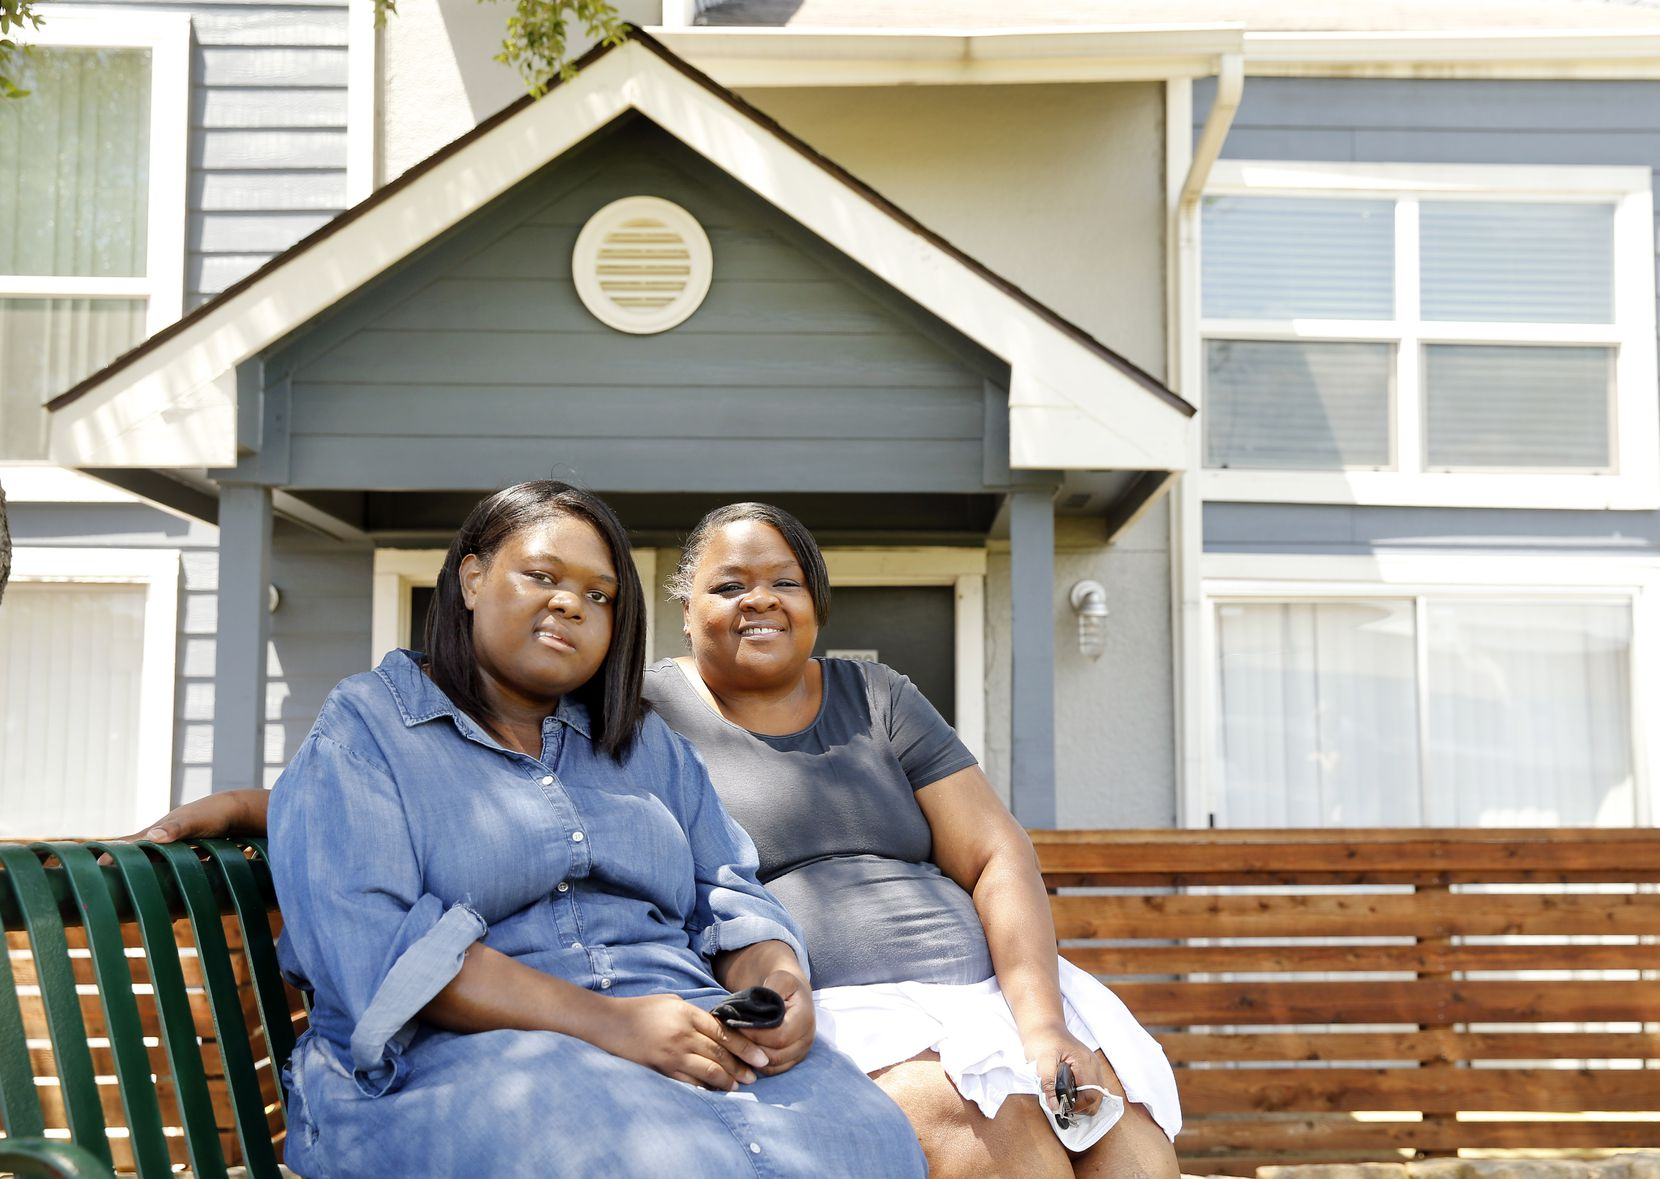 Kiara Hearn (left) and her mother Rhonda Hinton of Irving were both diagnosed with COVID-19, the illness caused by the coronavirus. Hearn was intubated and needed a ventilator to help her breathe. Both have now recovered.